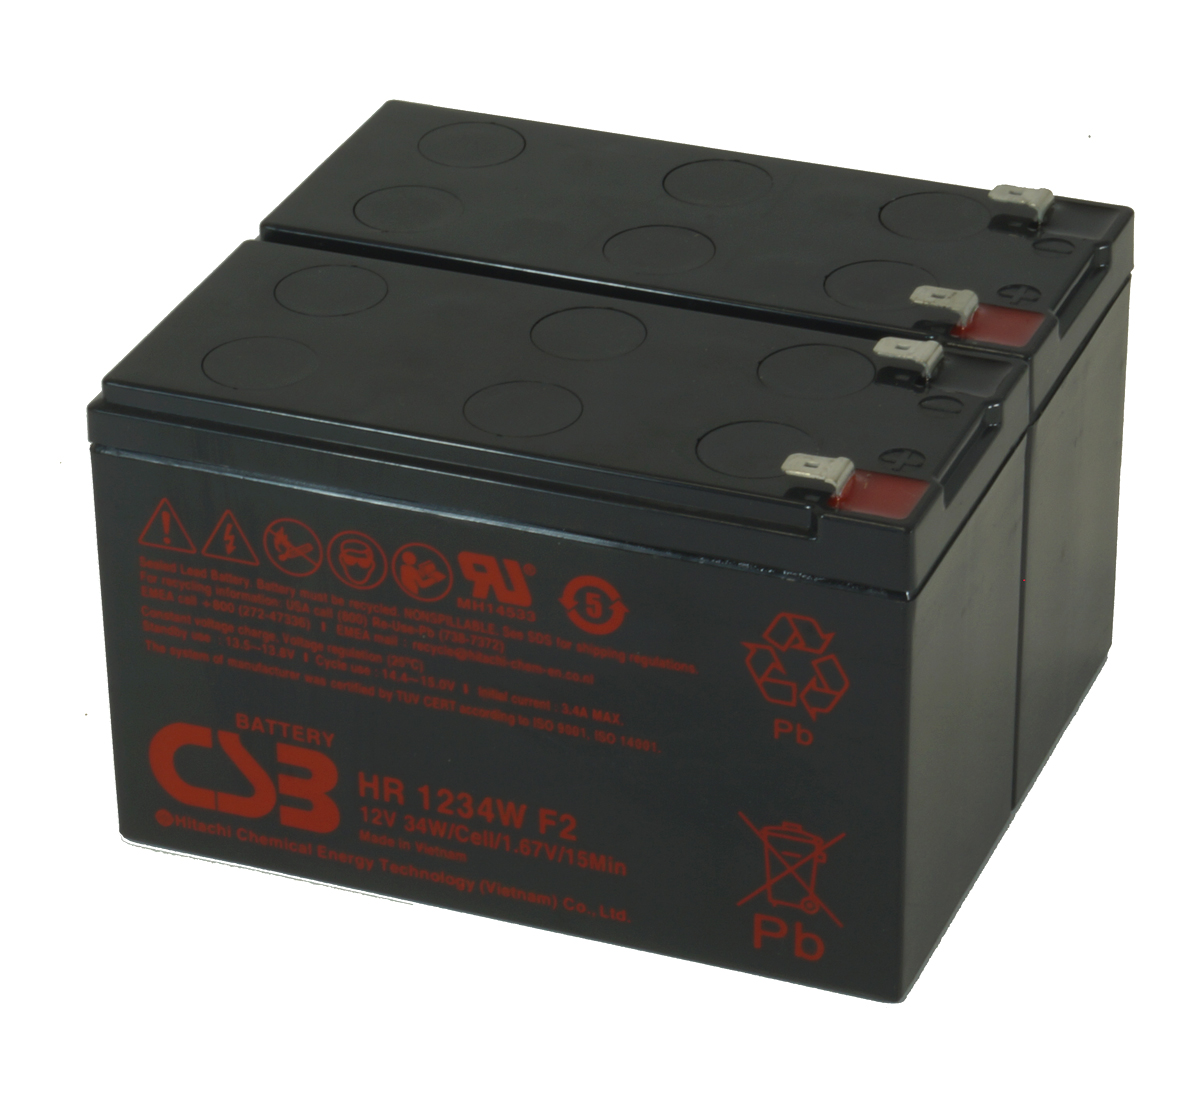 MDS2003 UPS Battery Kit for MGE AB2003